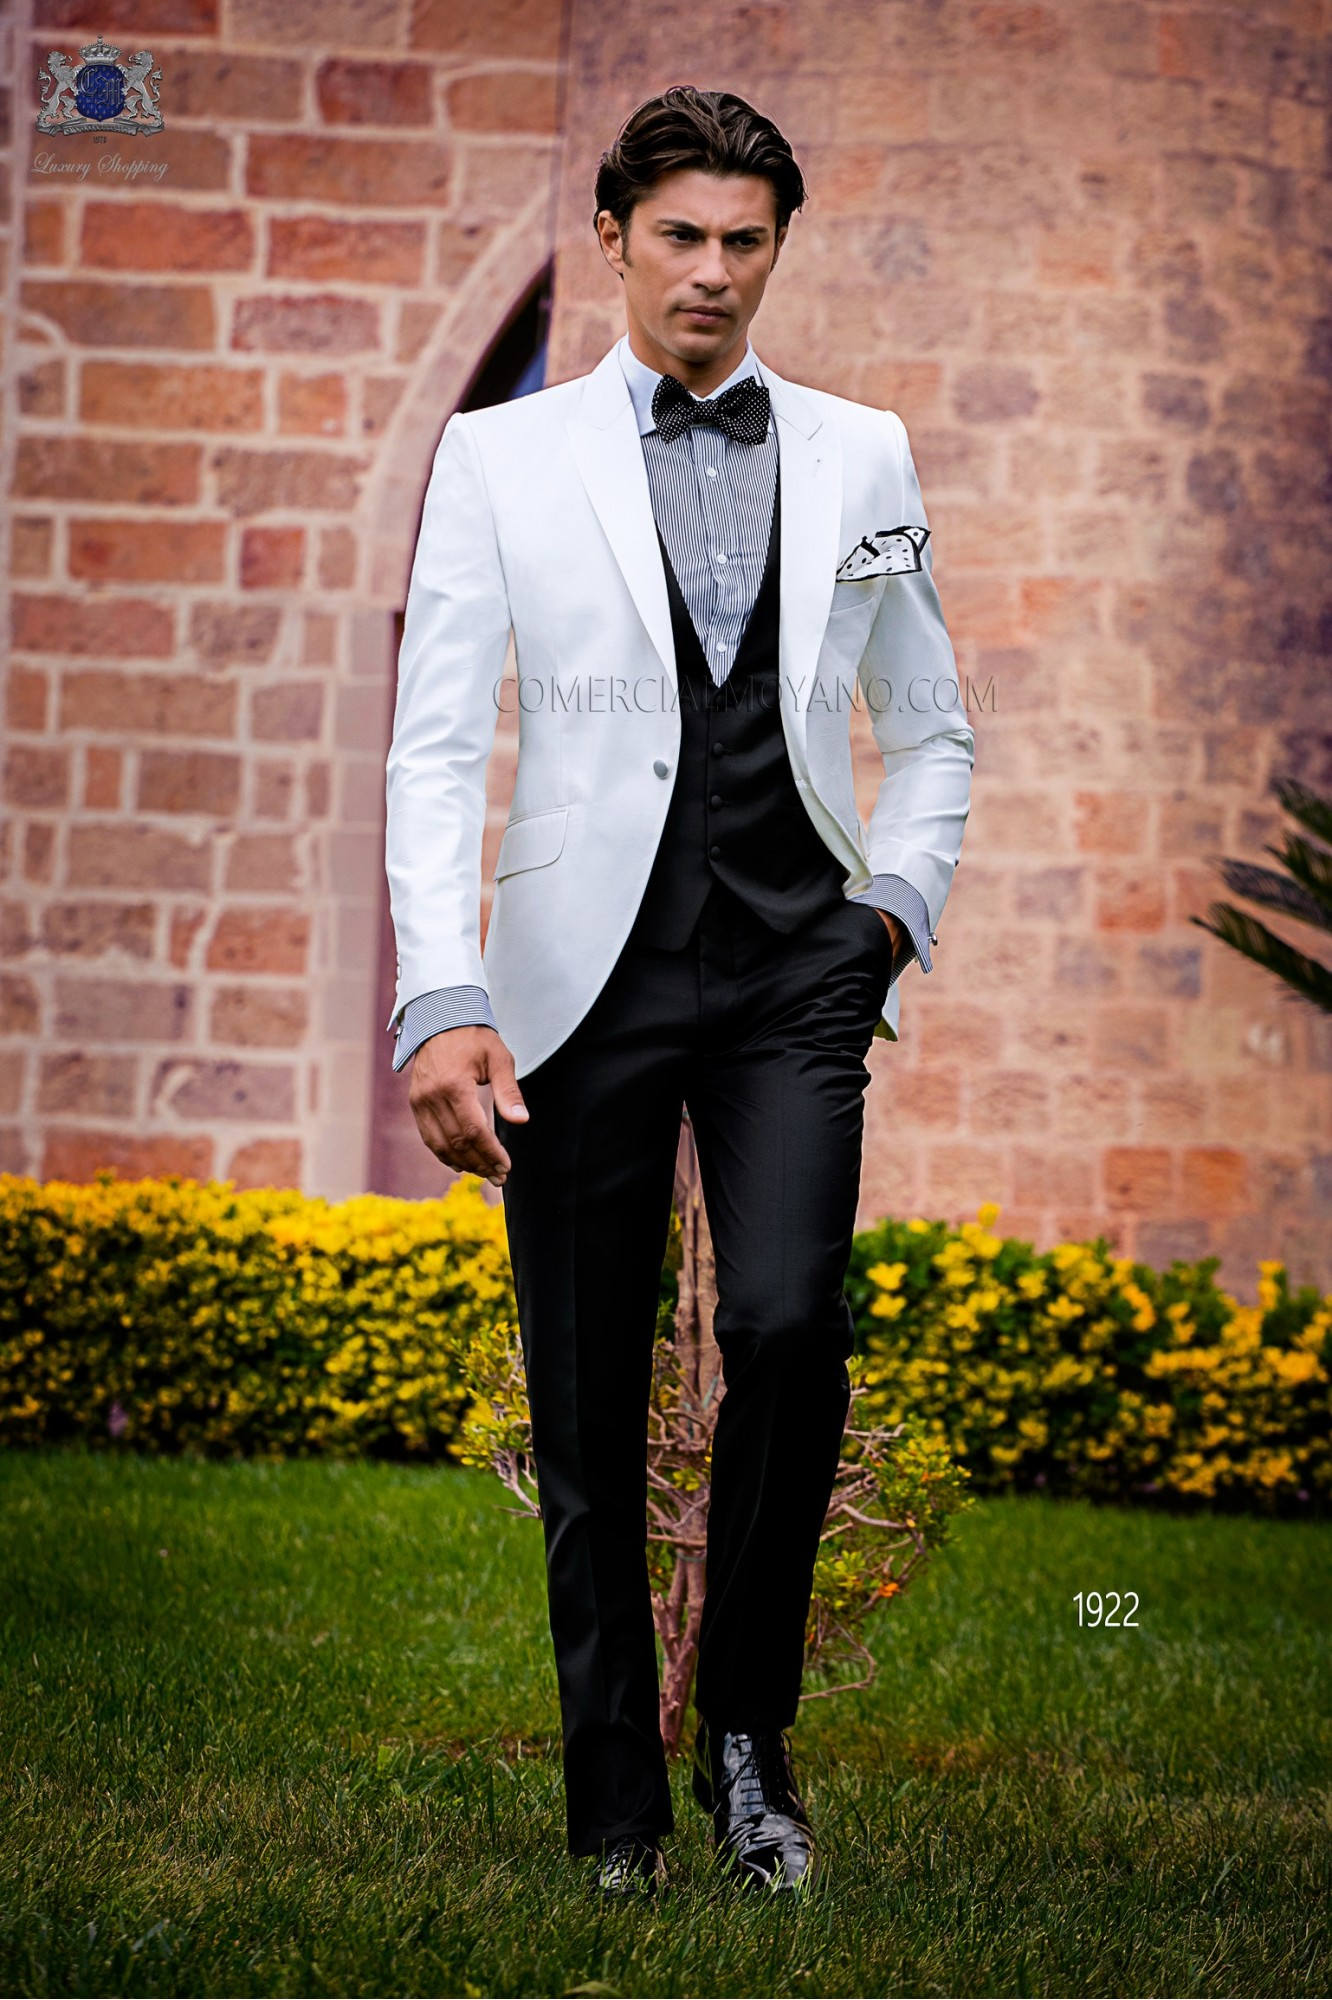 Bespoke white shantung dinner jacket combined with a black trousers model 1922 Ottavio Nuccio Gala